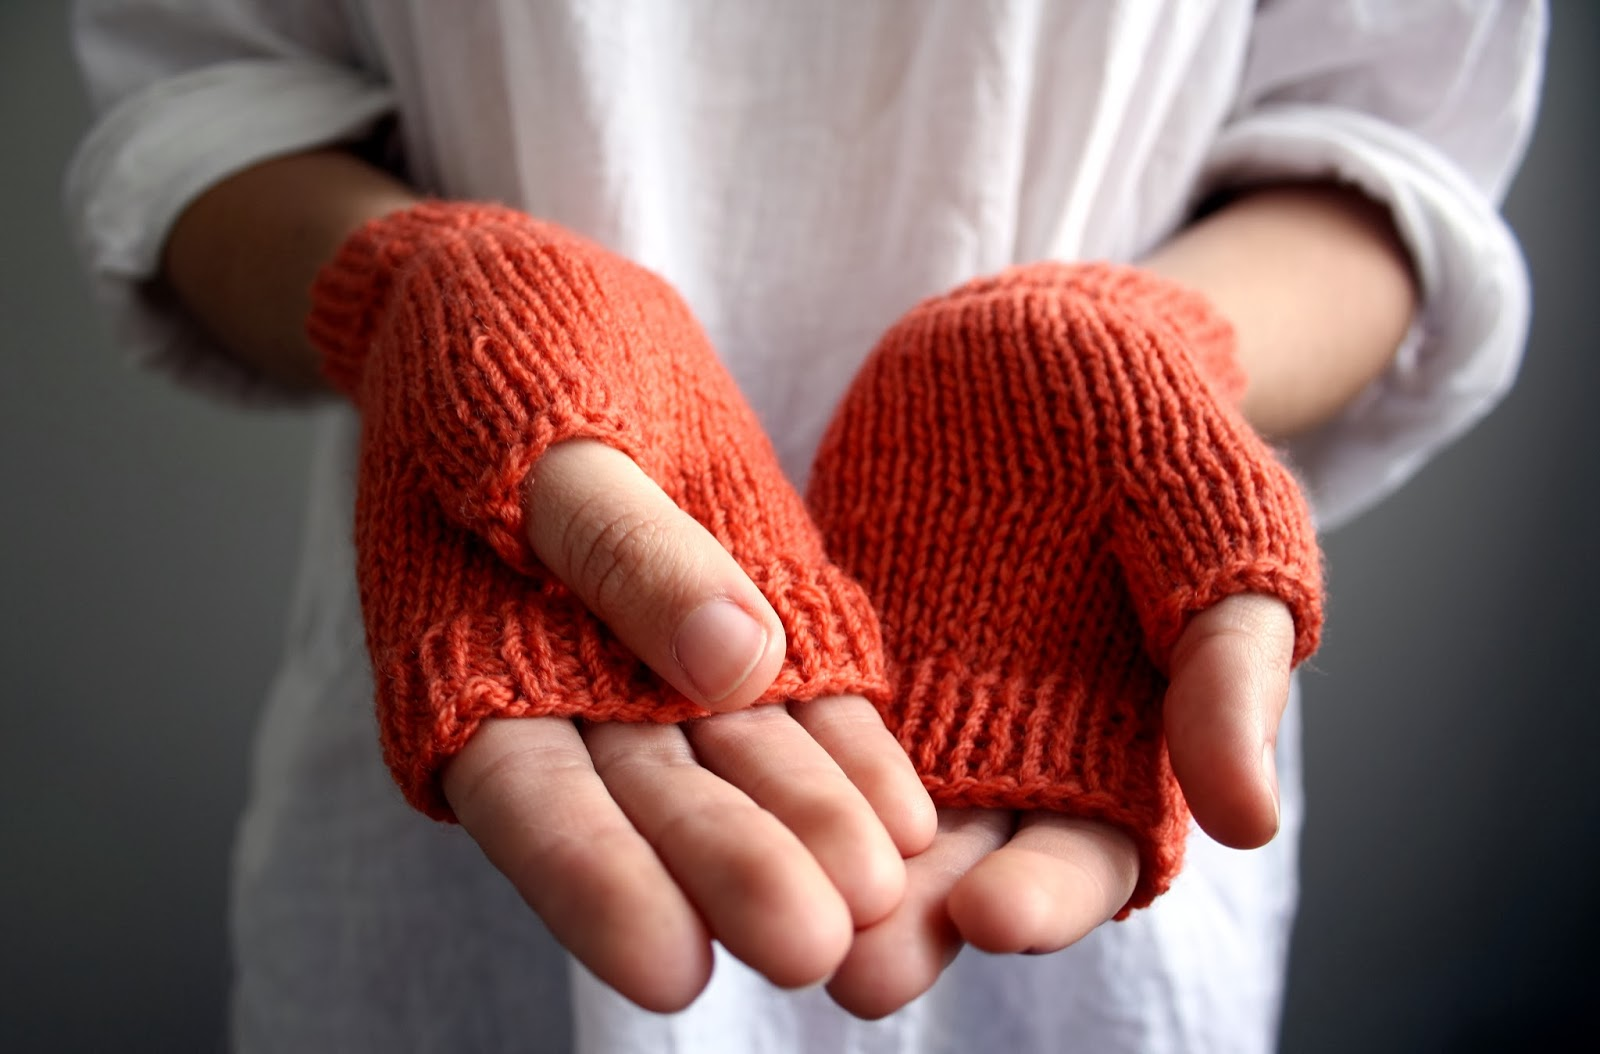 https://www.etsy.com/au/listing/182119162/wool-fingerless-gloves-handknit-in?ref=shop_home_active_1